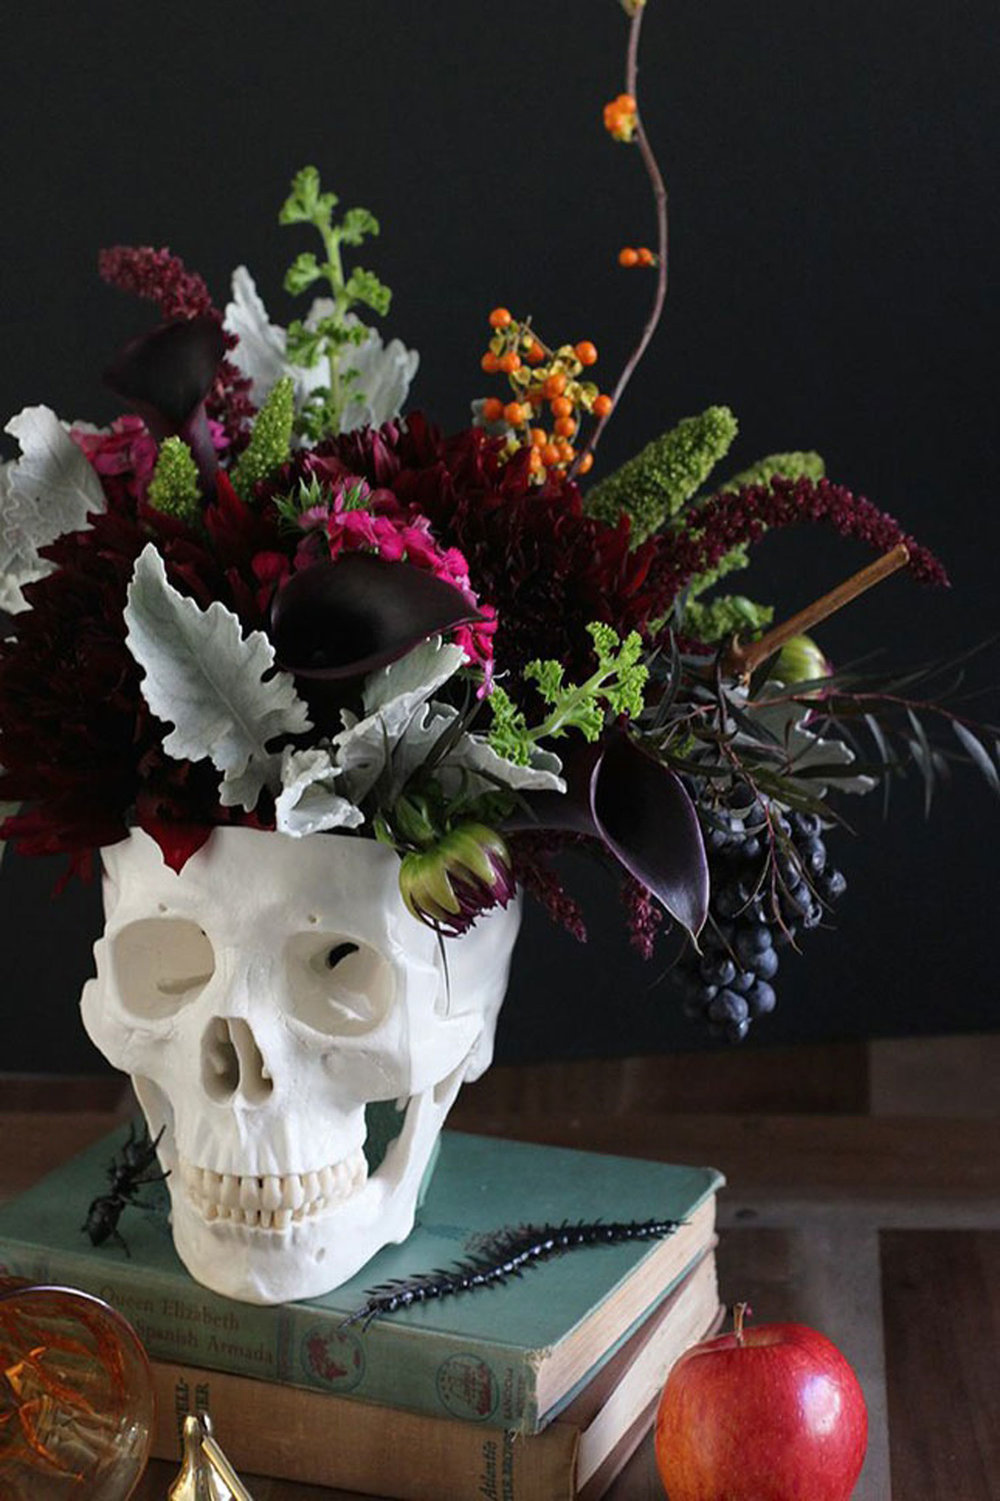 Pair skulls and a dark floral arrangement for an eerie glamour (via Brit + Co)